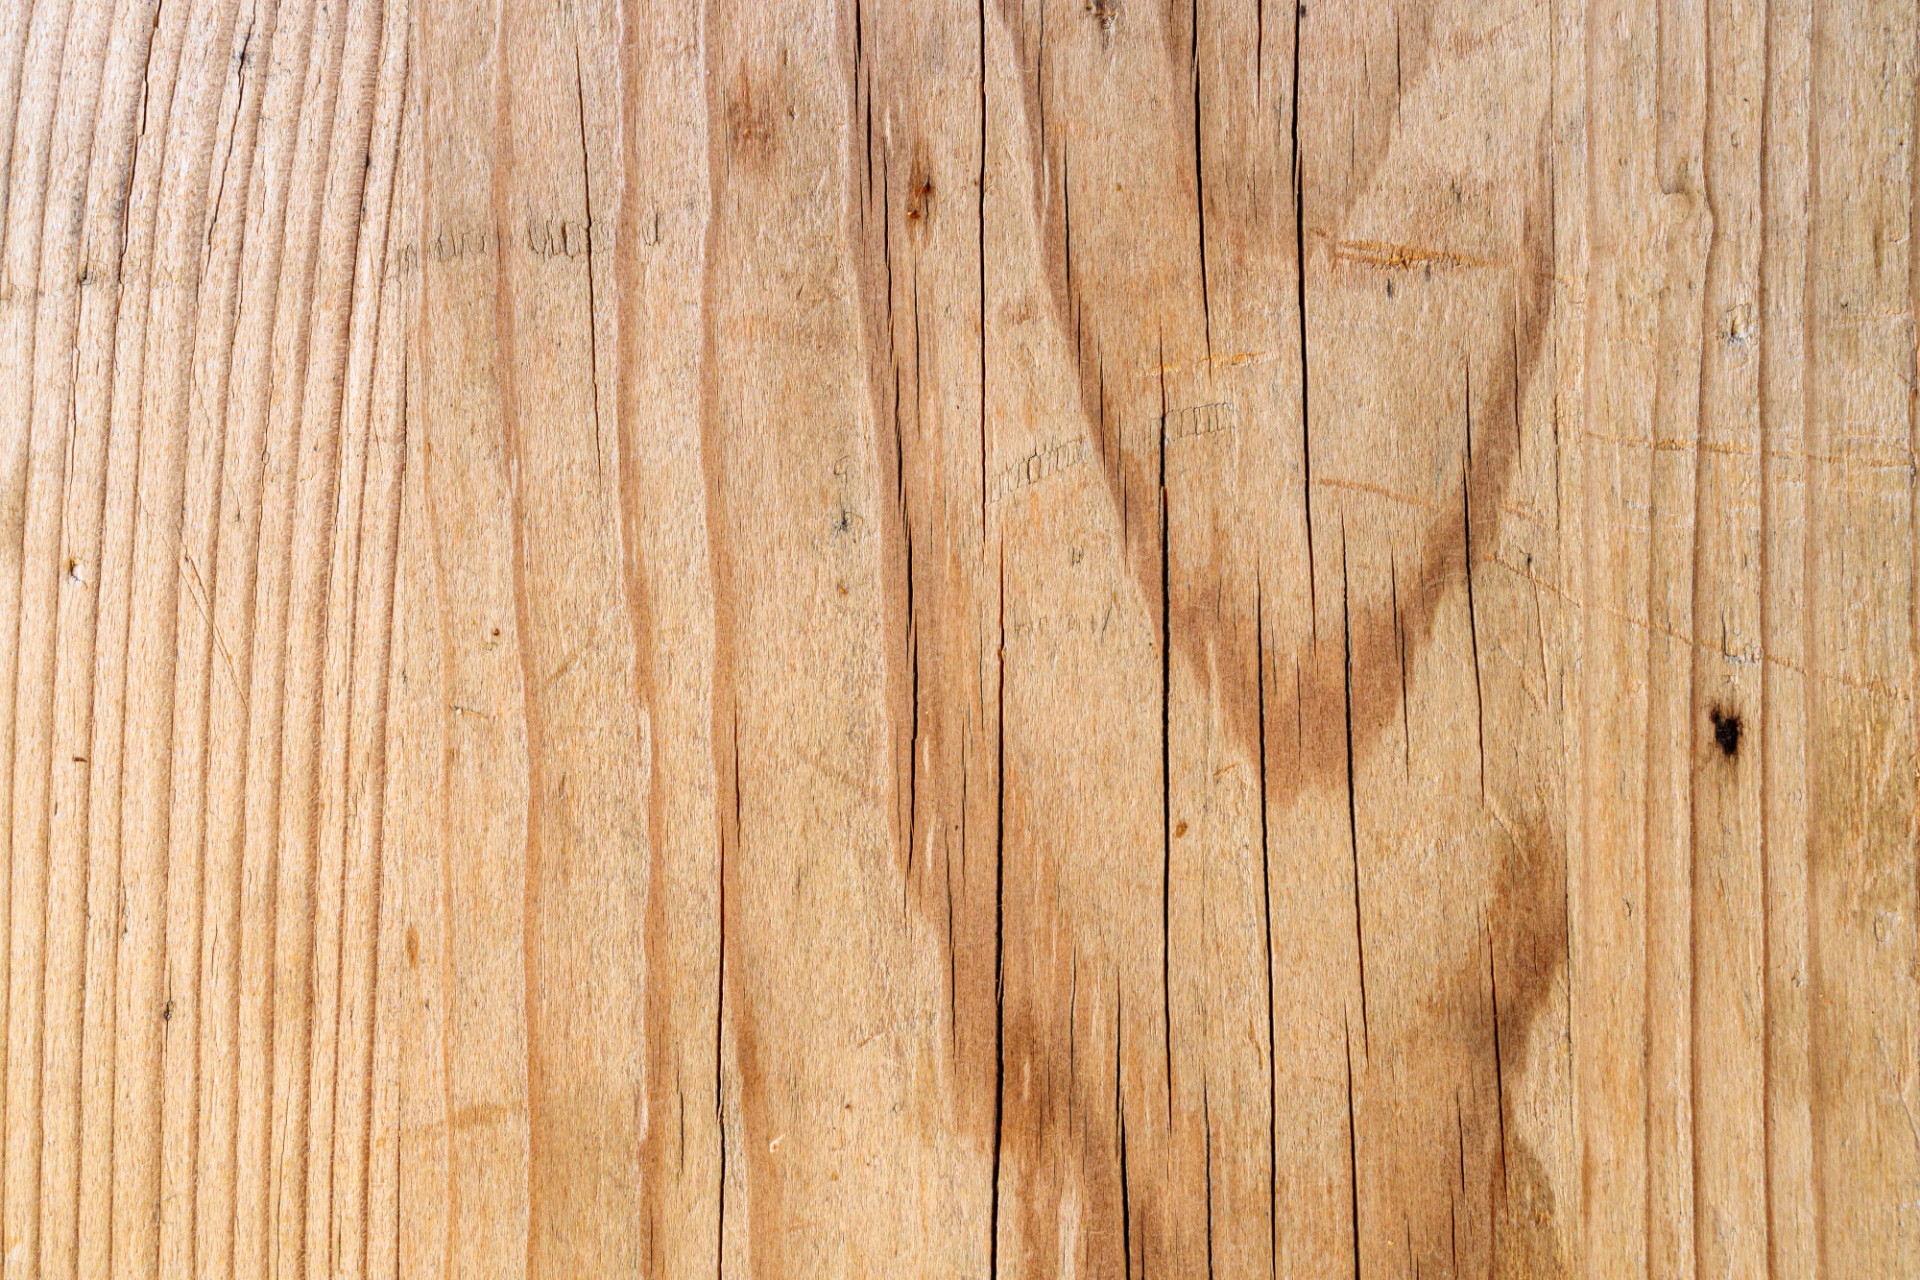 Light wood texture with natural grain